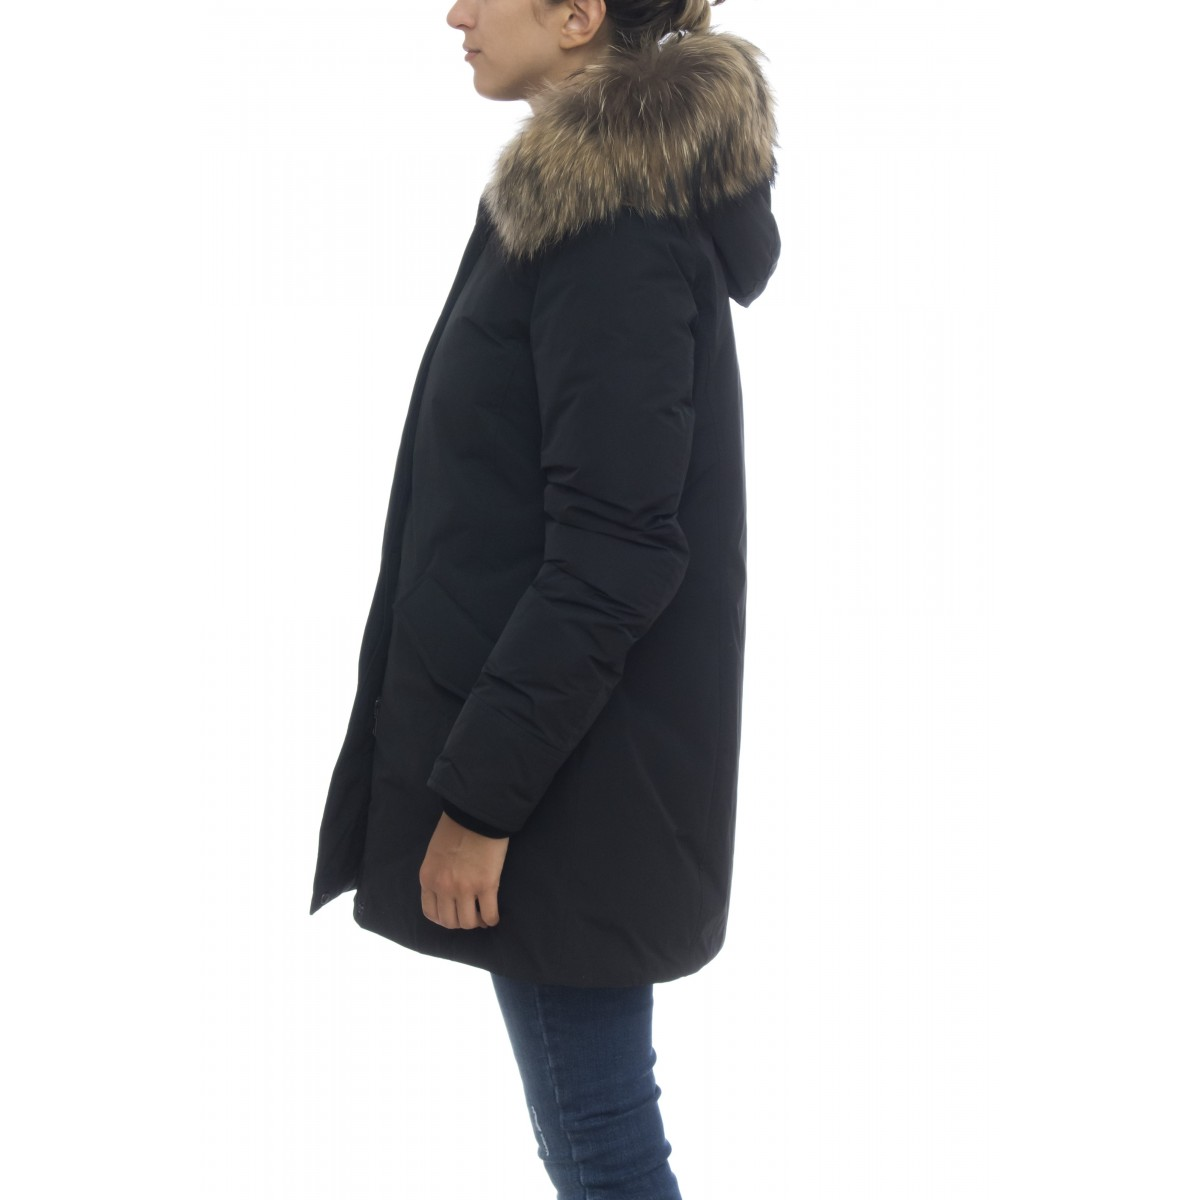 Piumino - Wwcps2833 luxury artic parka